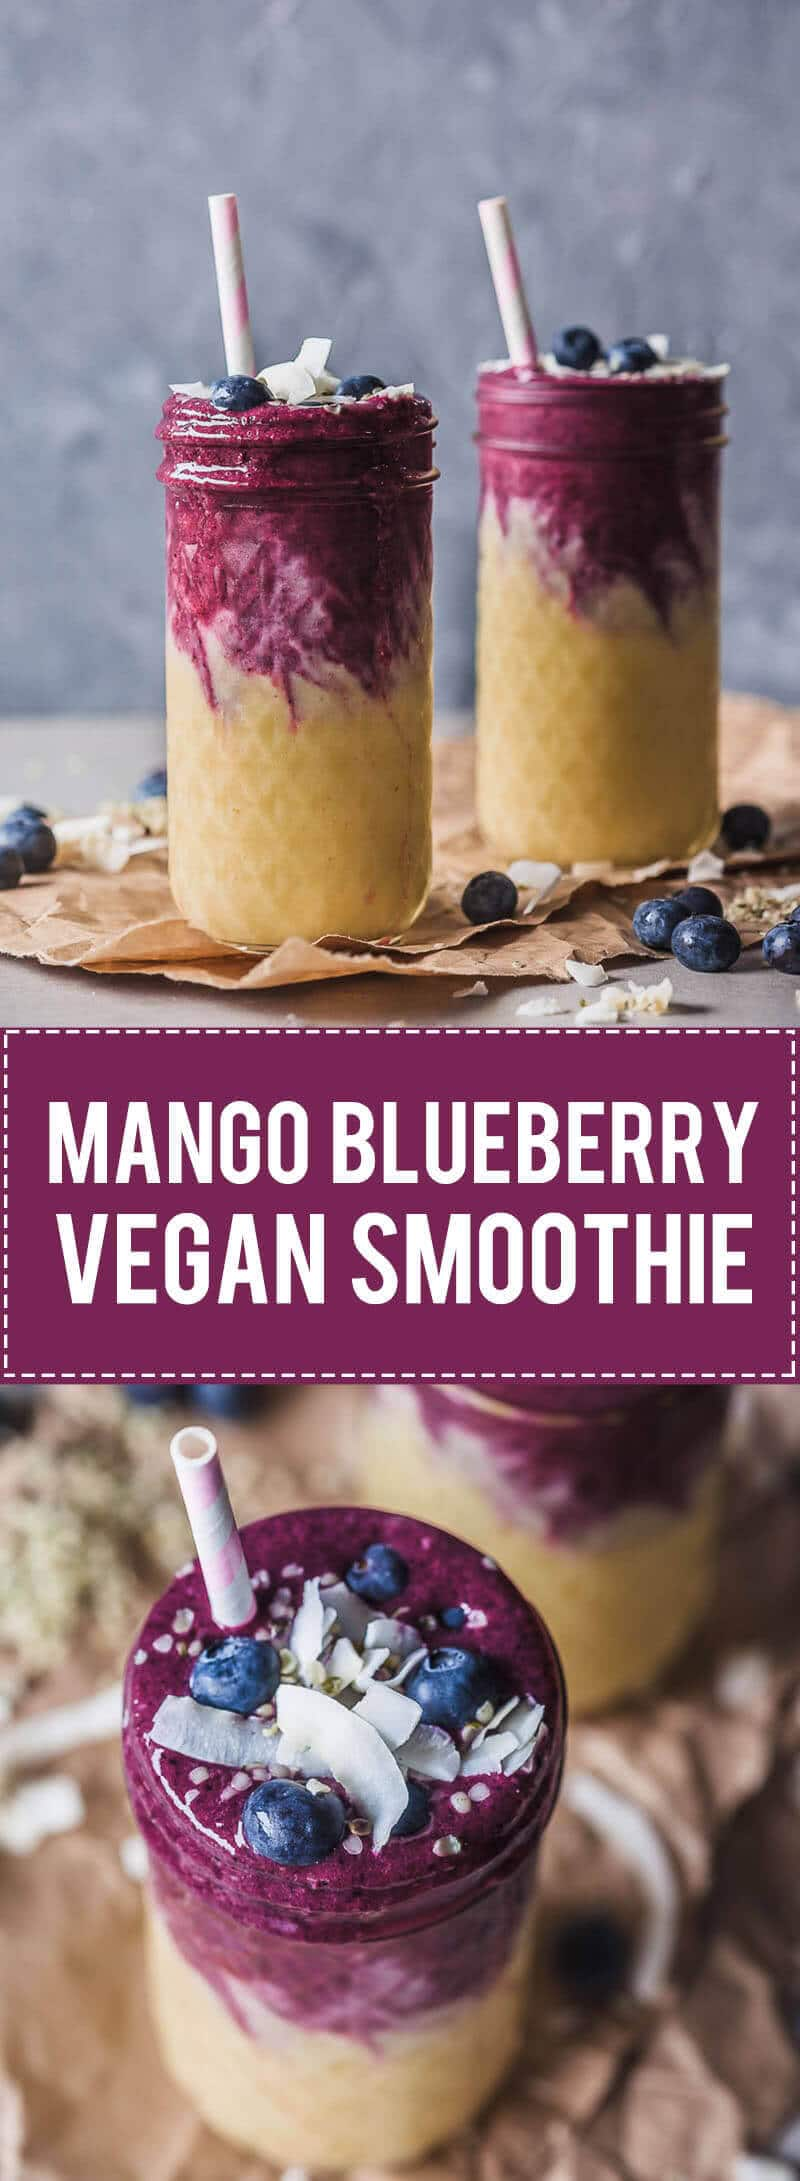 This lovely Mango Blueberry Smoothie uses frozen mango and blueberries and is perfect to maximize your nutrient intake in winter. Use dairy-free yogurt to make it vegan!